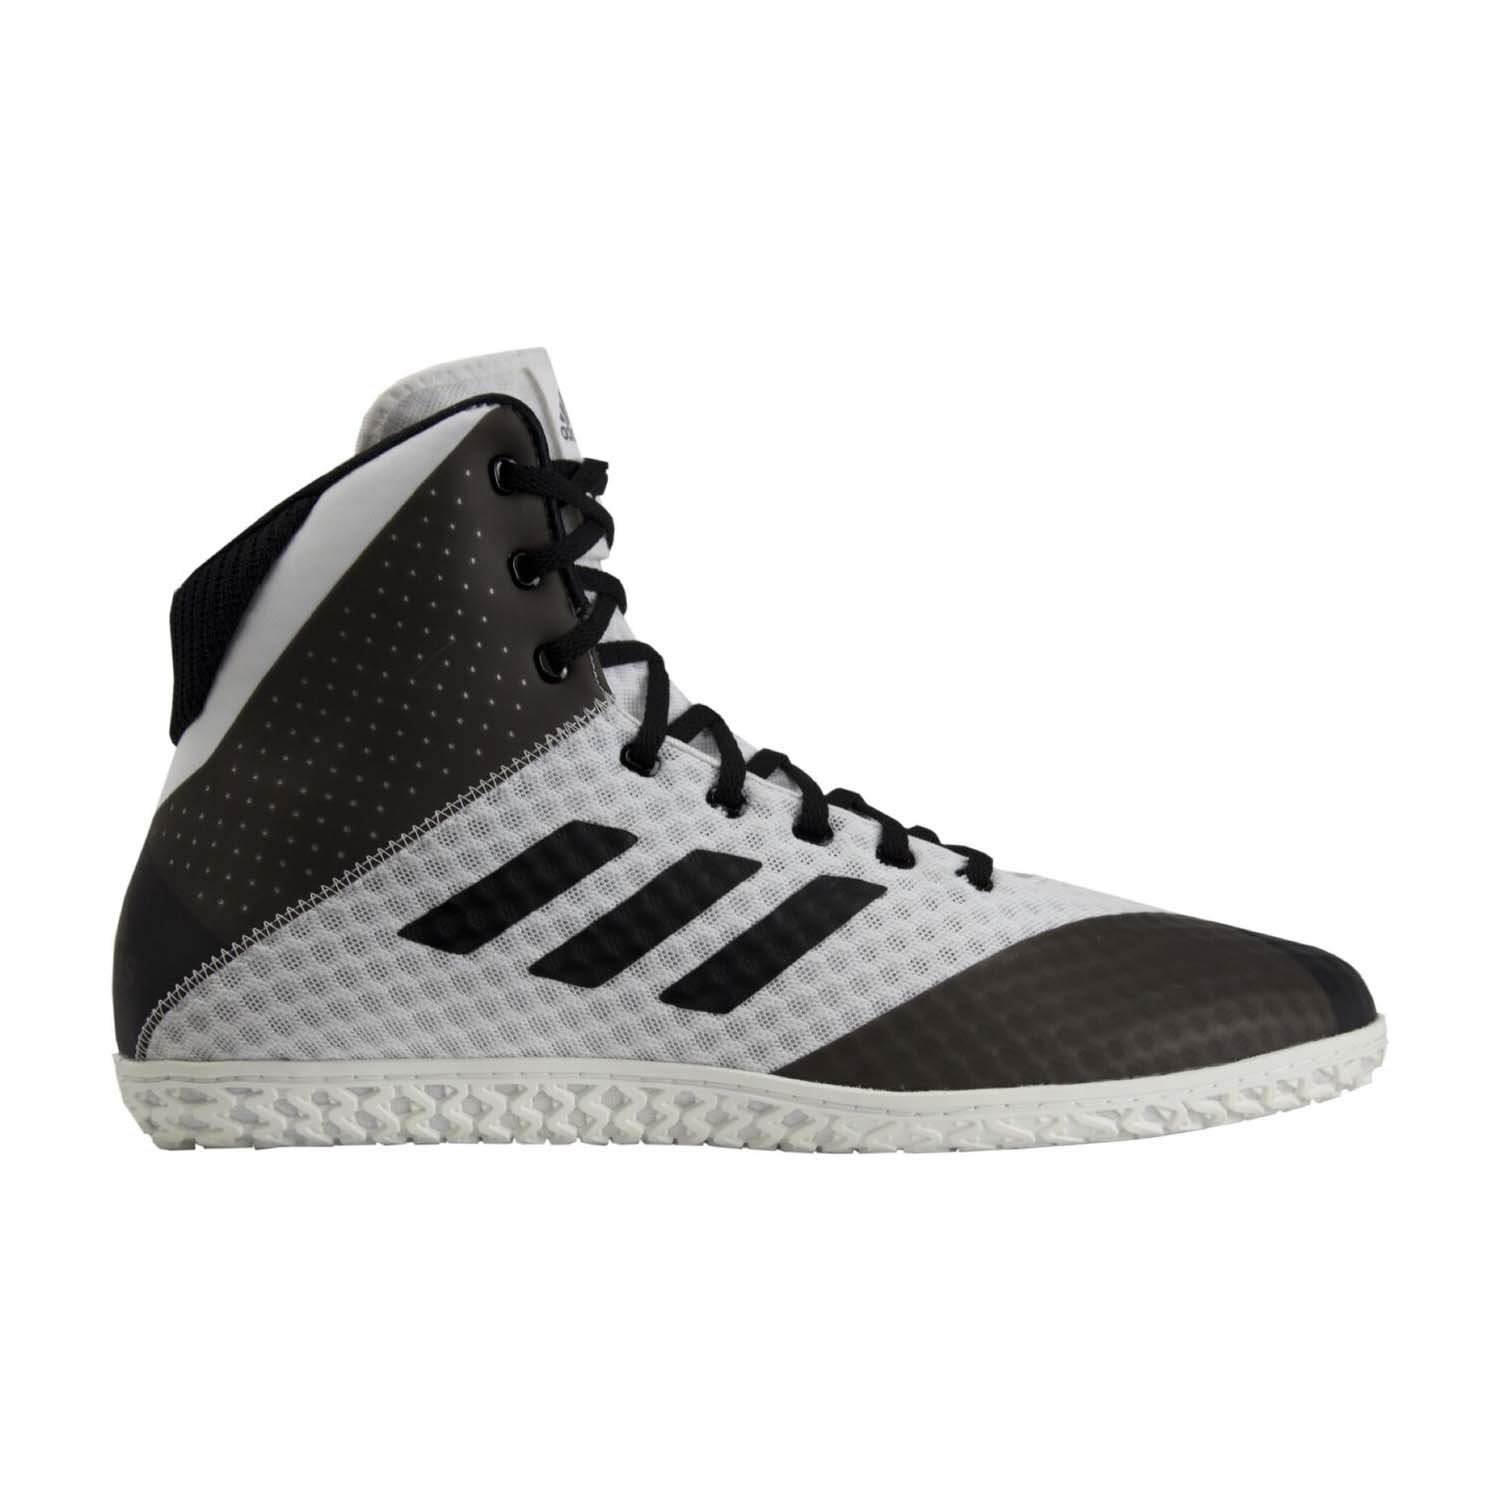 adidas Mat Wizard 4 Wrestling Shoes - Mens B07BHZ5HW9 7 D(M) US|White